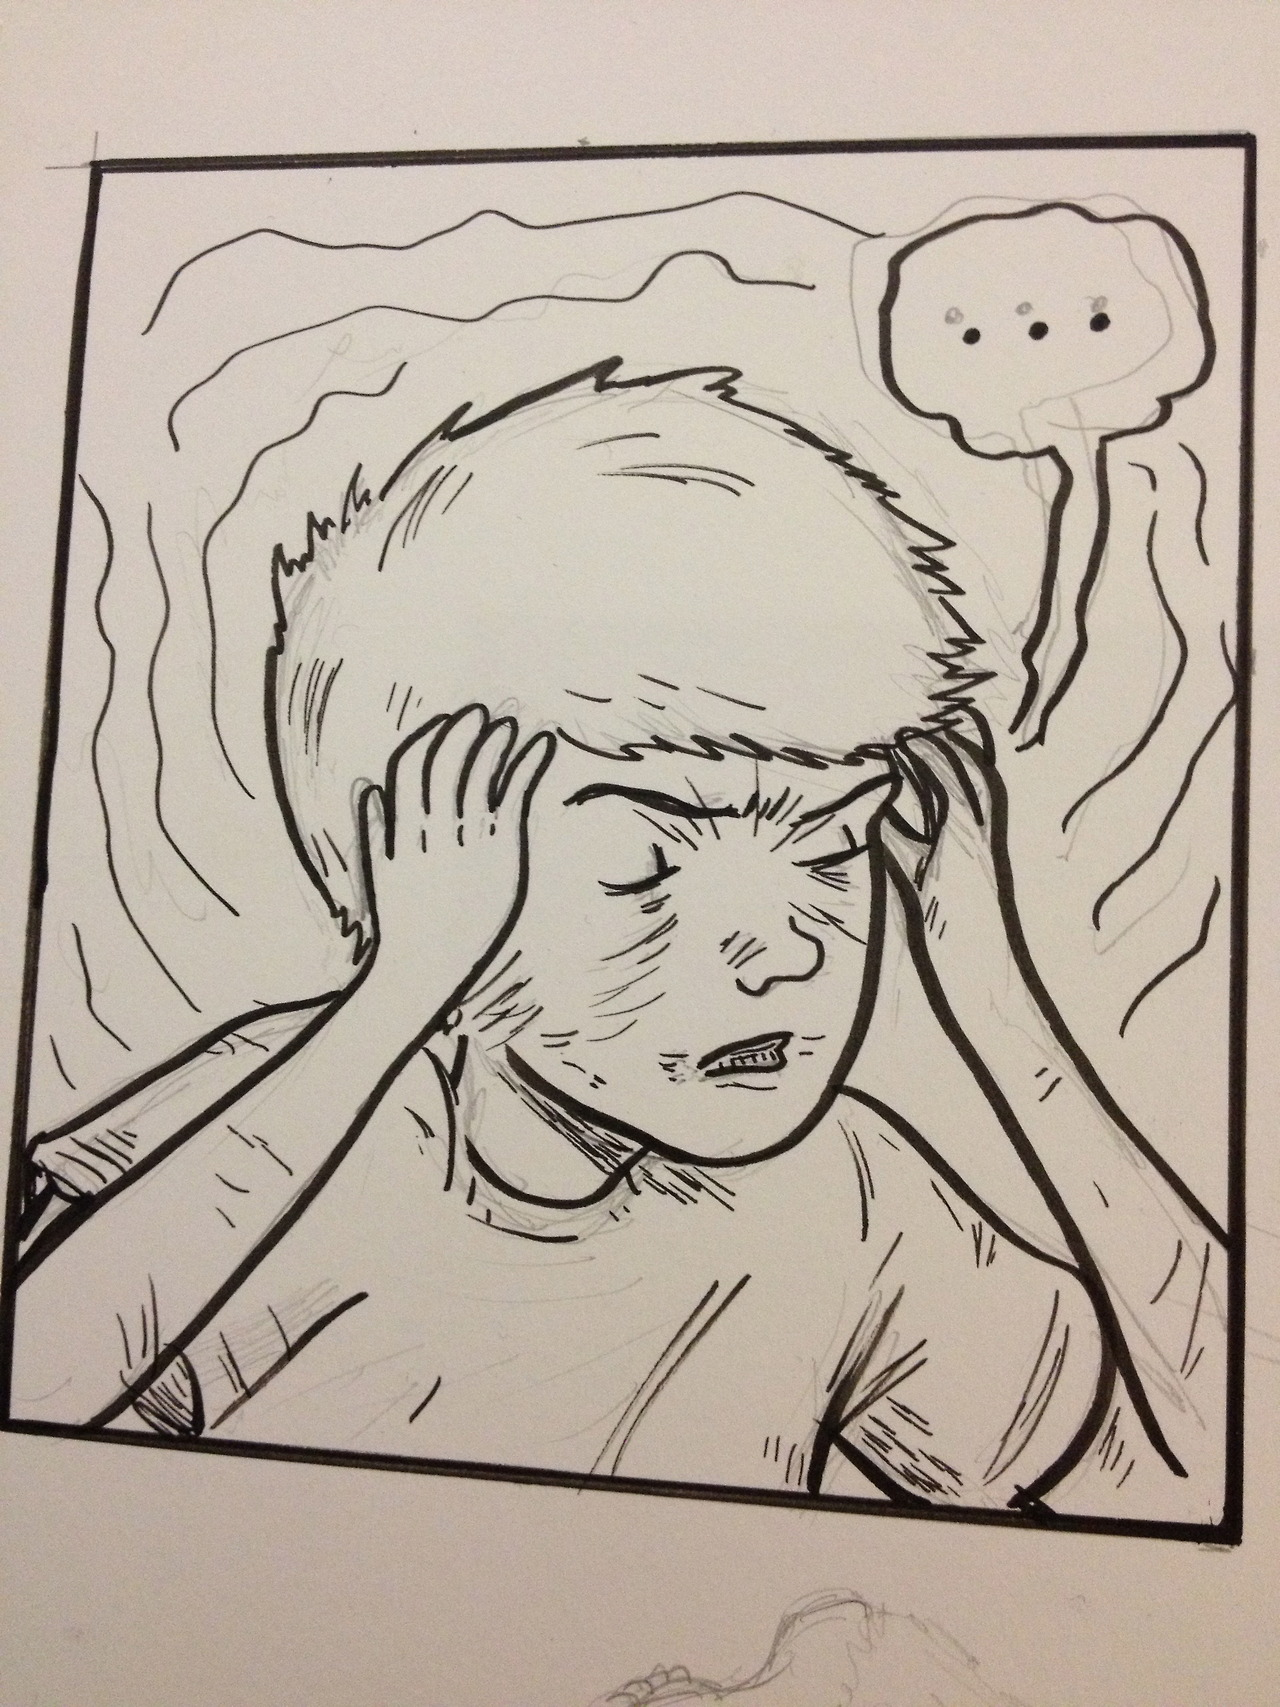 my new comic will include dramatic things like headaches.